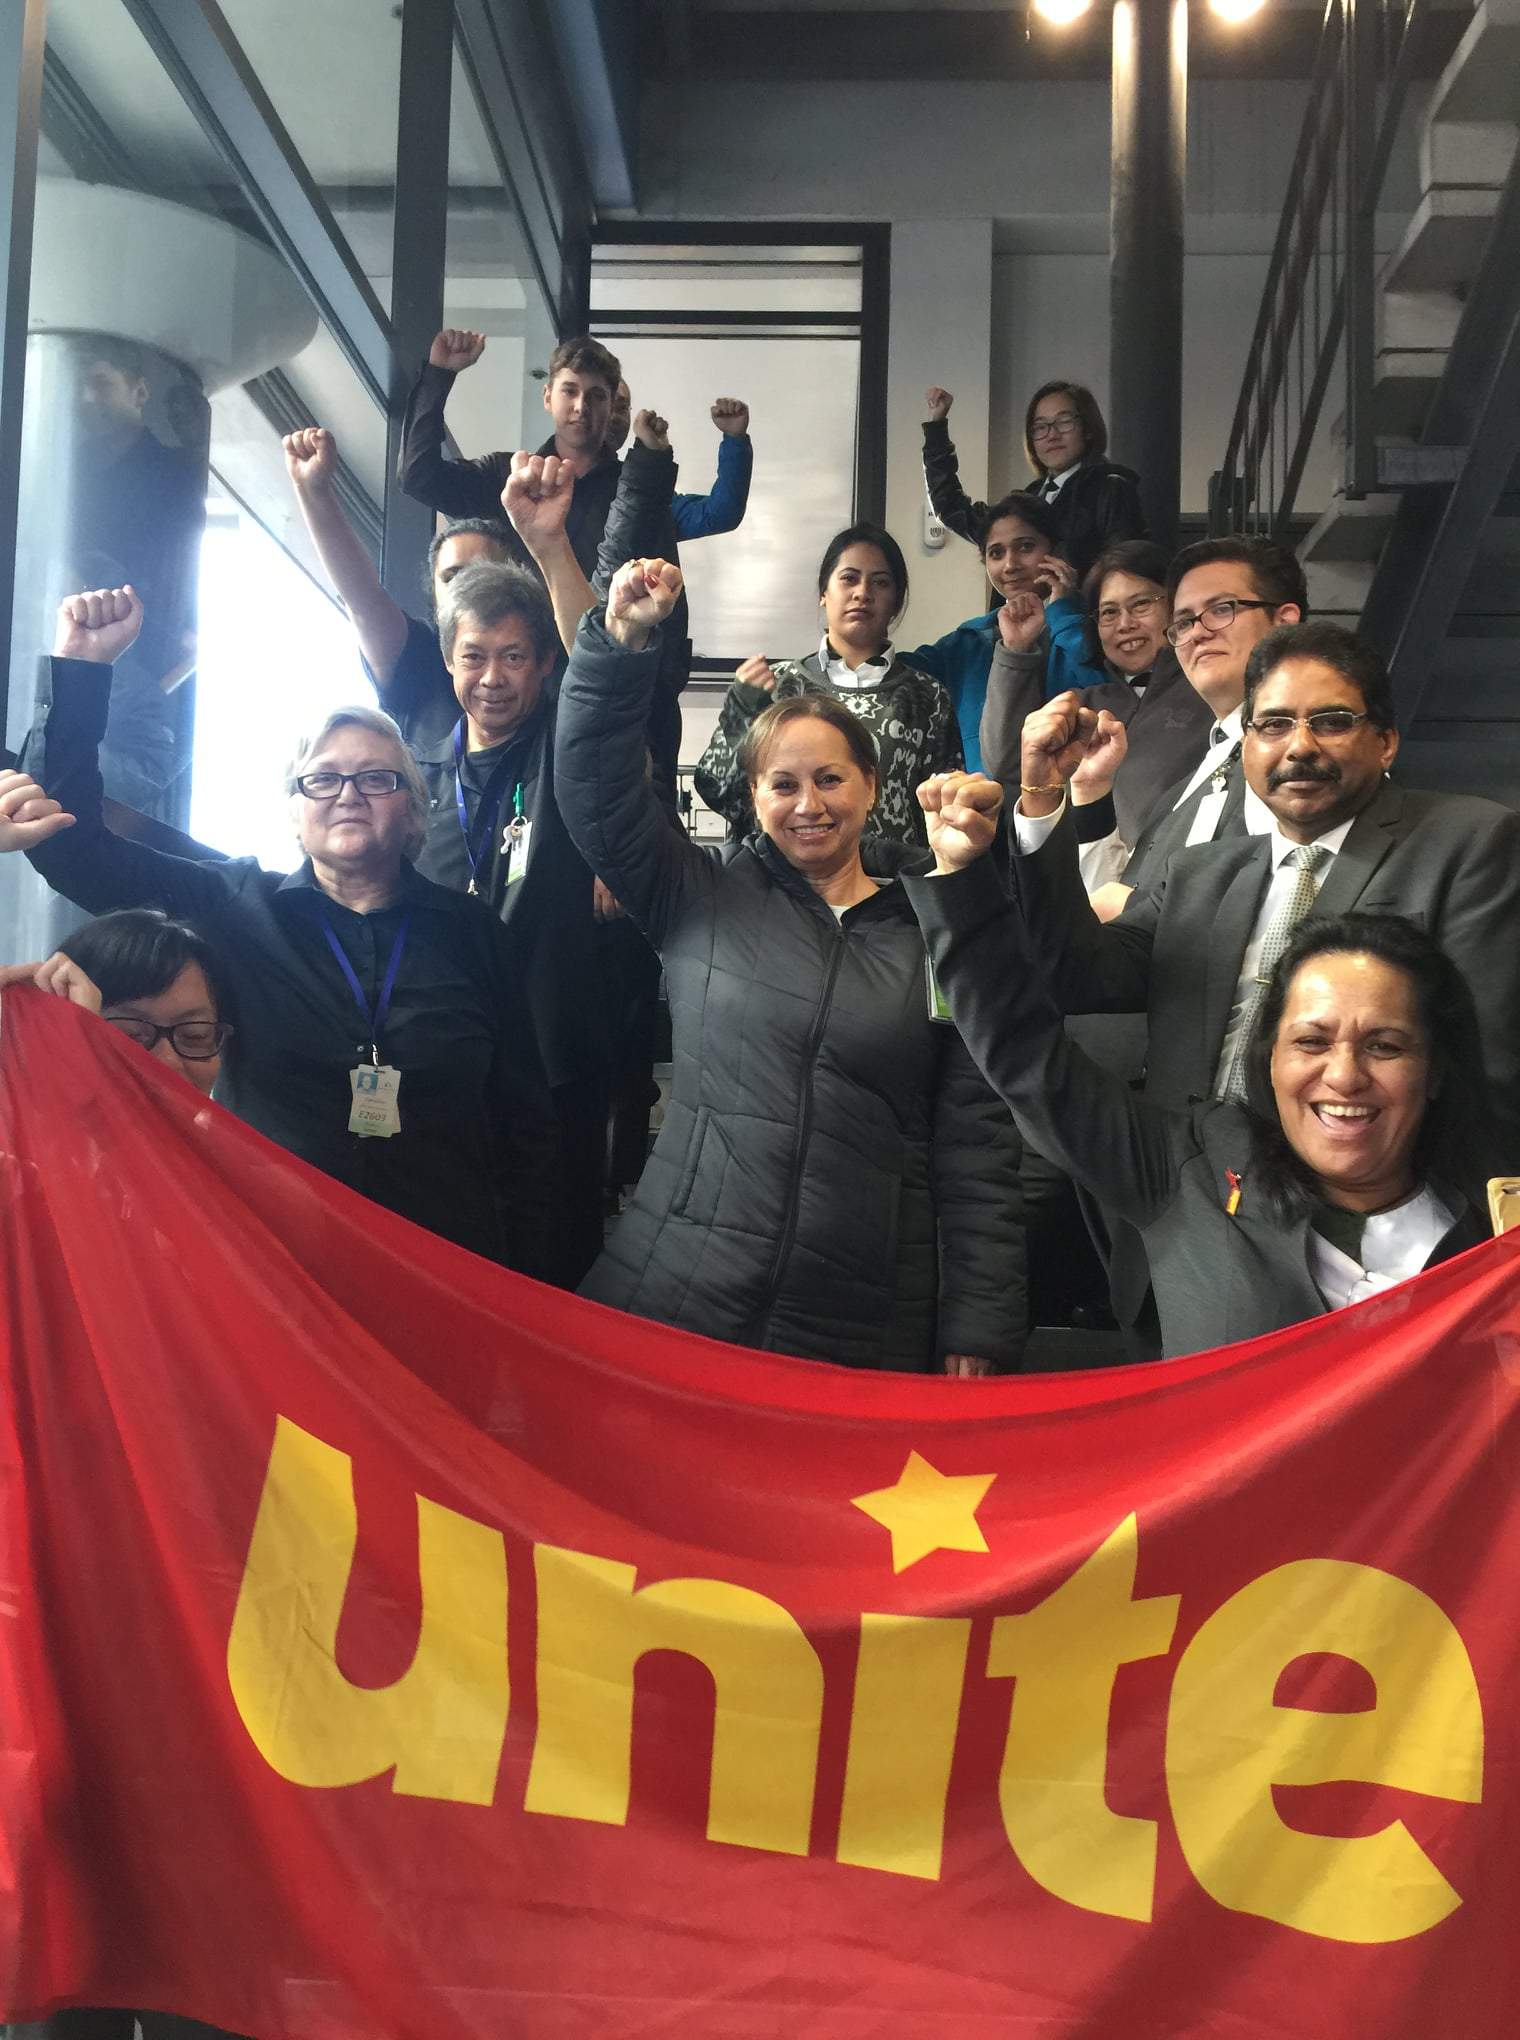 Sea-Unite members at SkyCity stay staunch